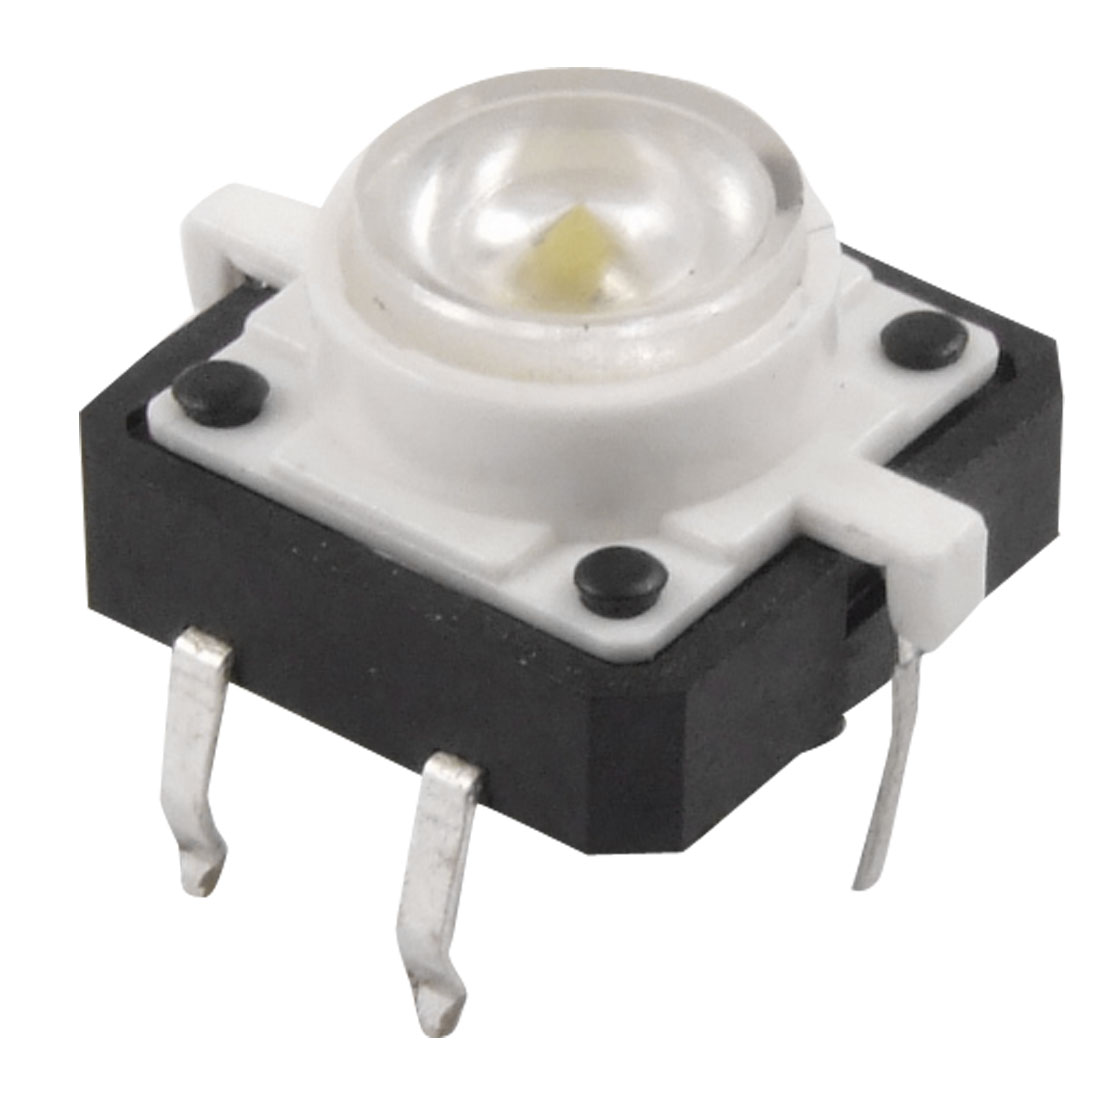 White LED Light Momentary Tactile Tact Push Button Switch 12 x 12mm x 7mm 4P DIP